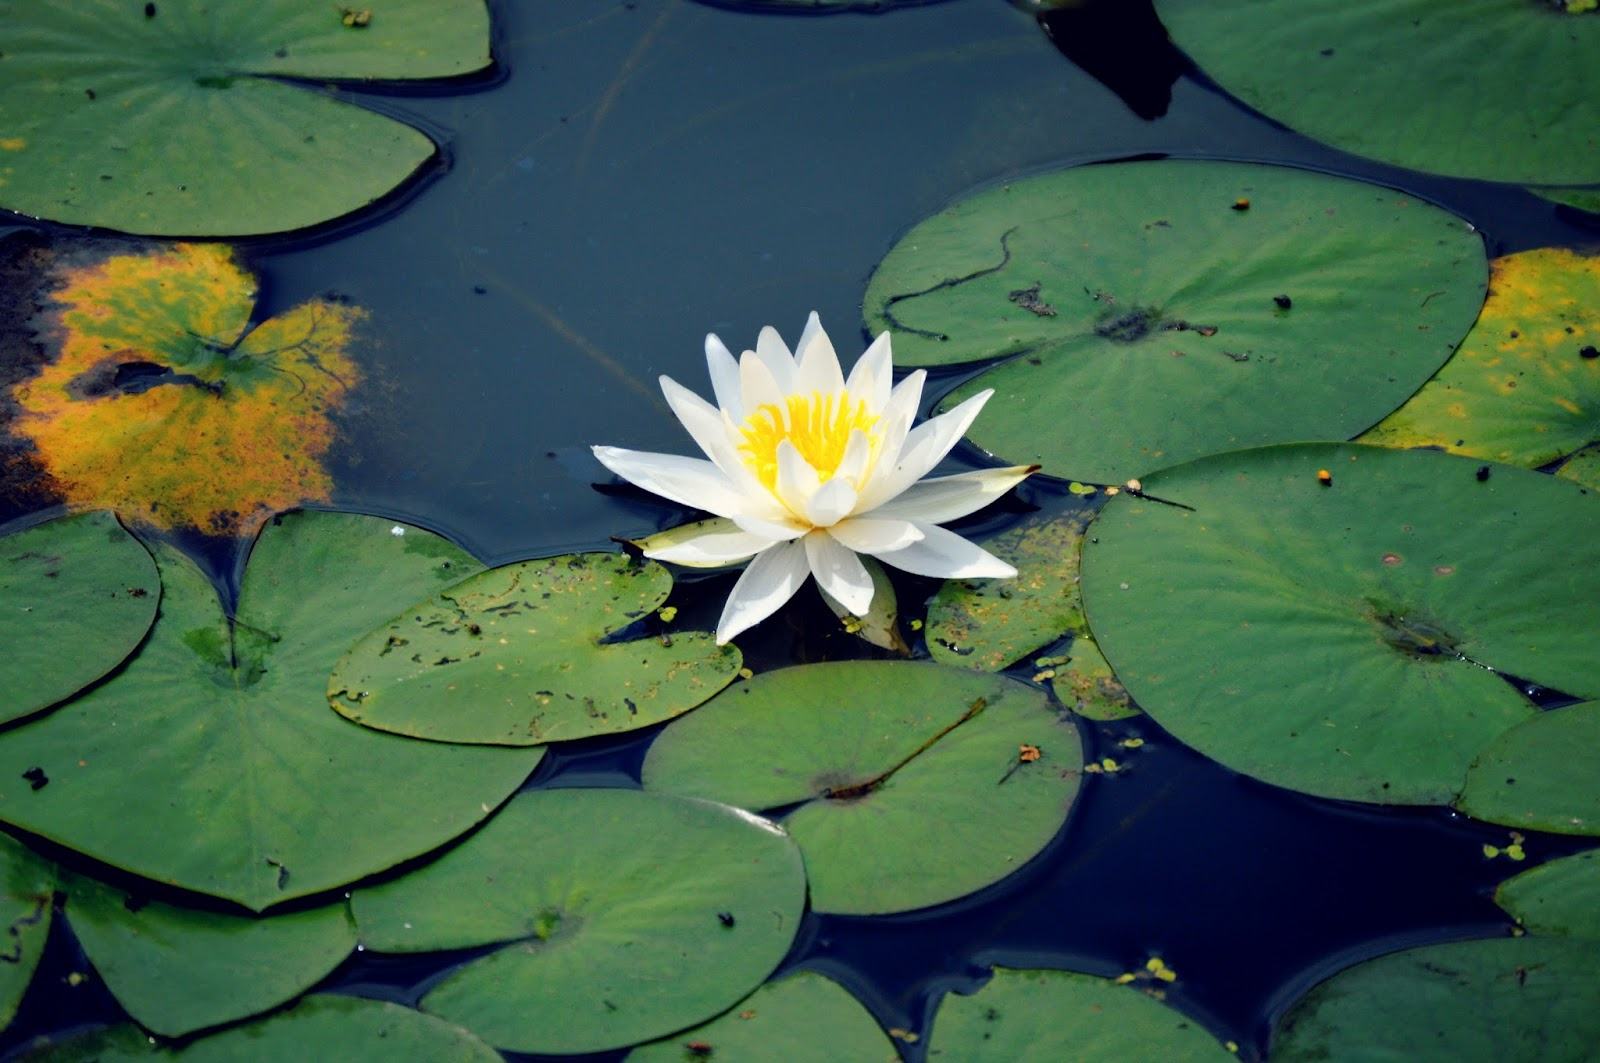 Confessions of a Serial Napper lilypad flower